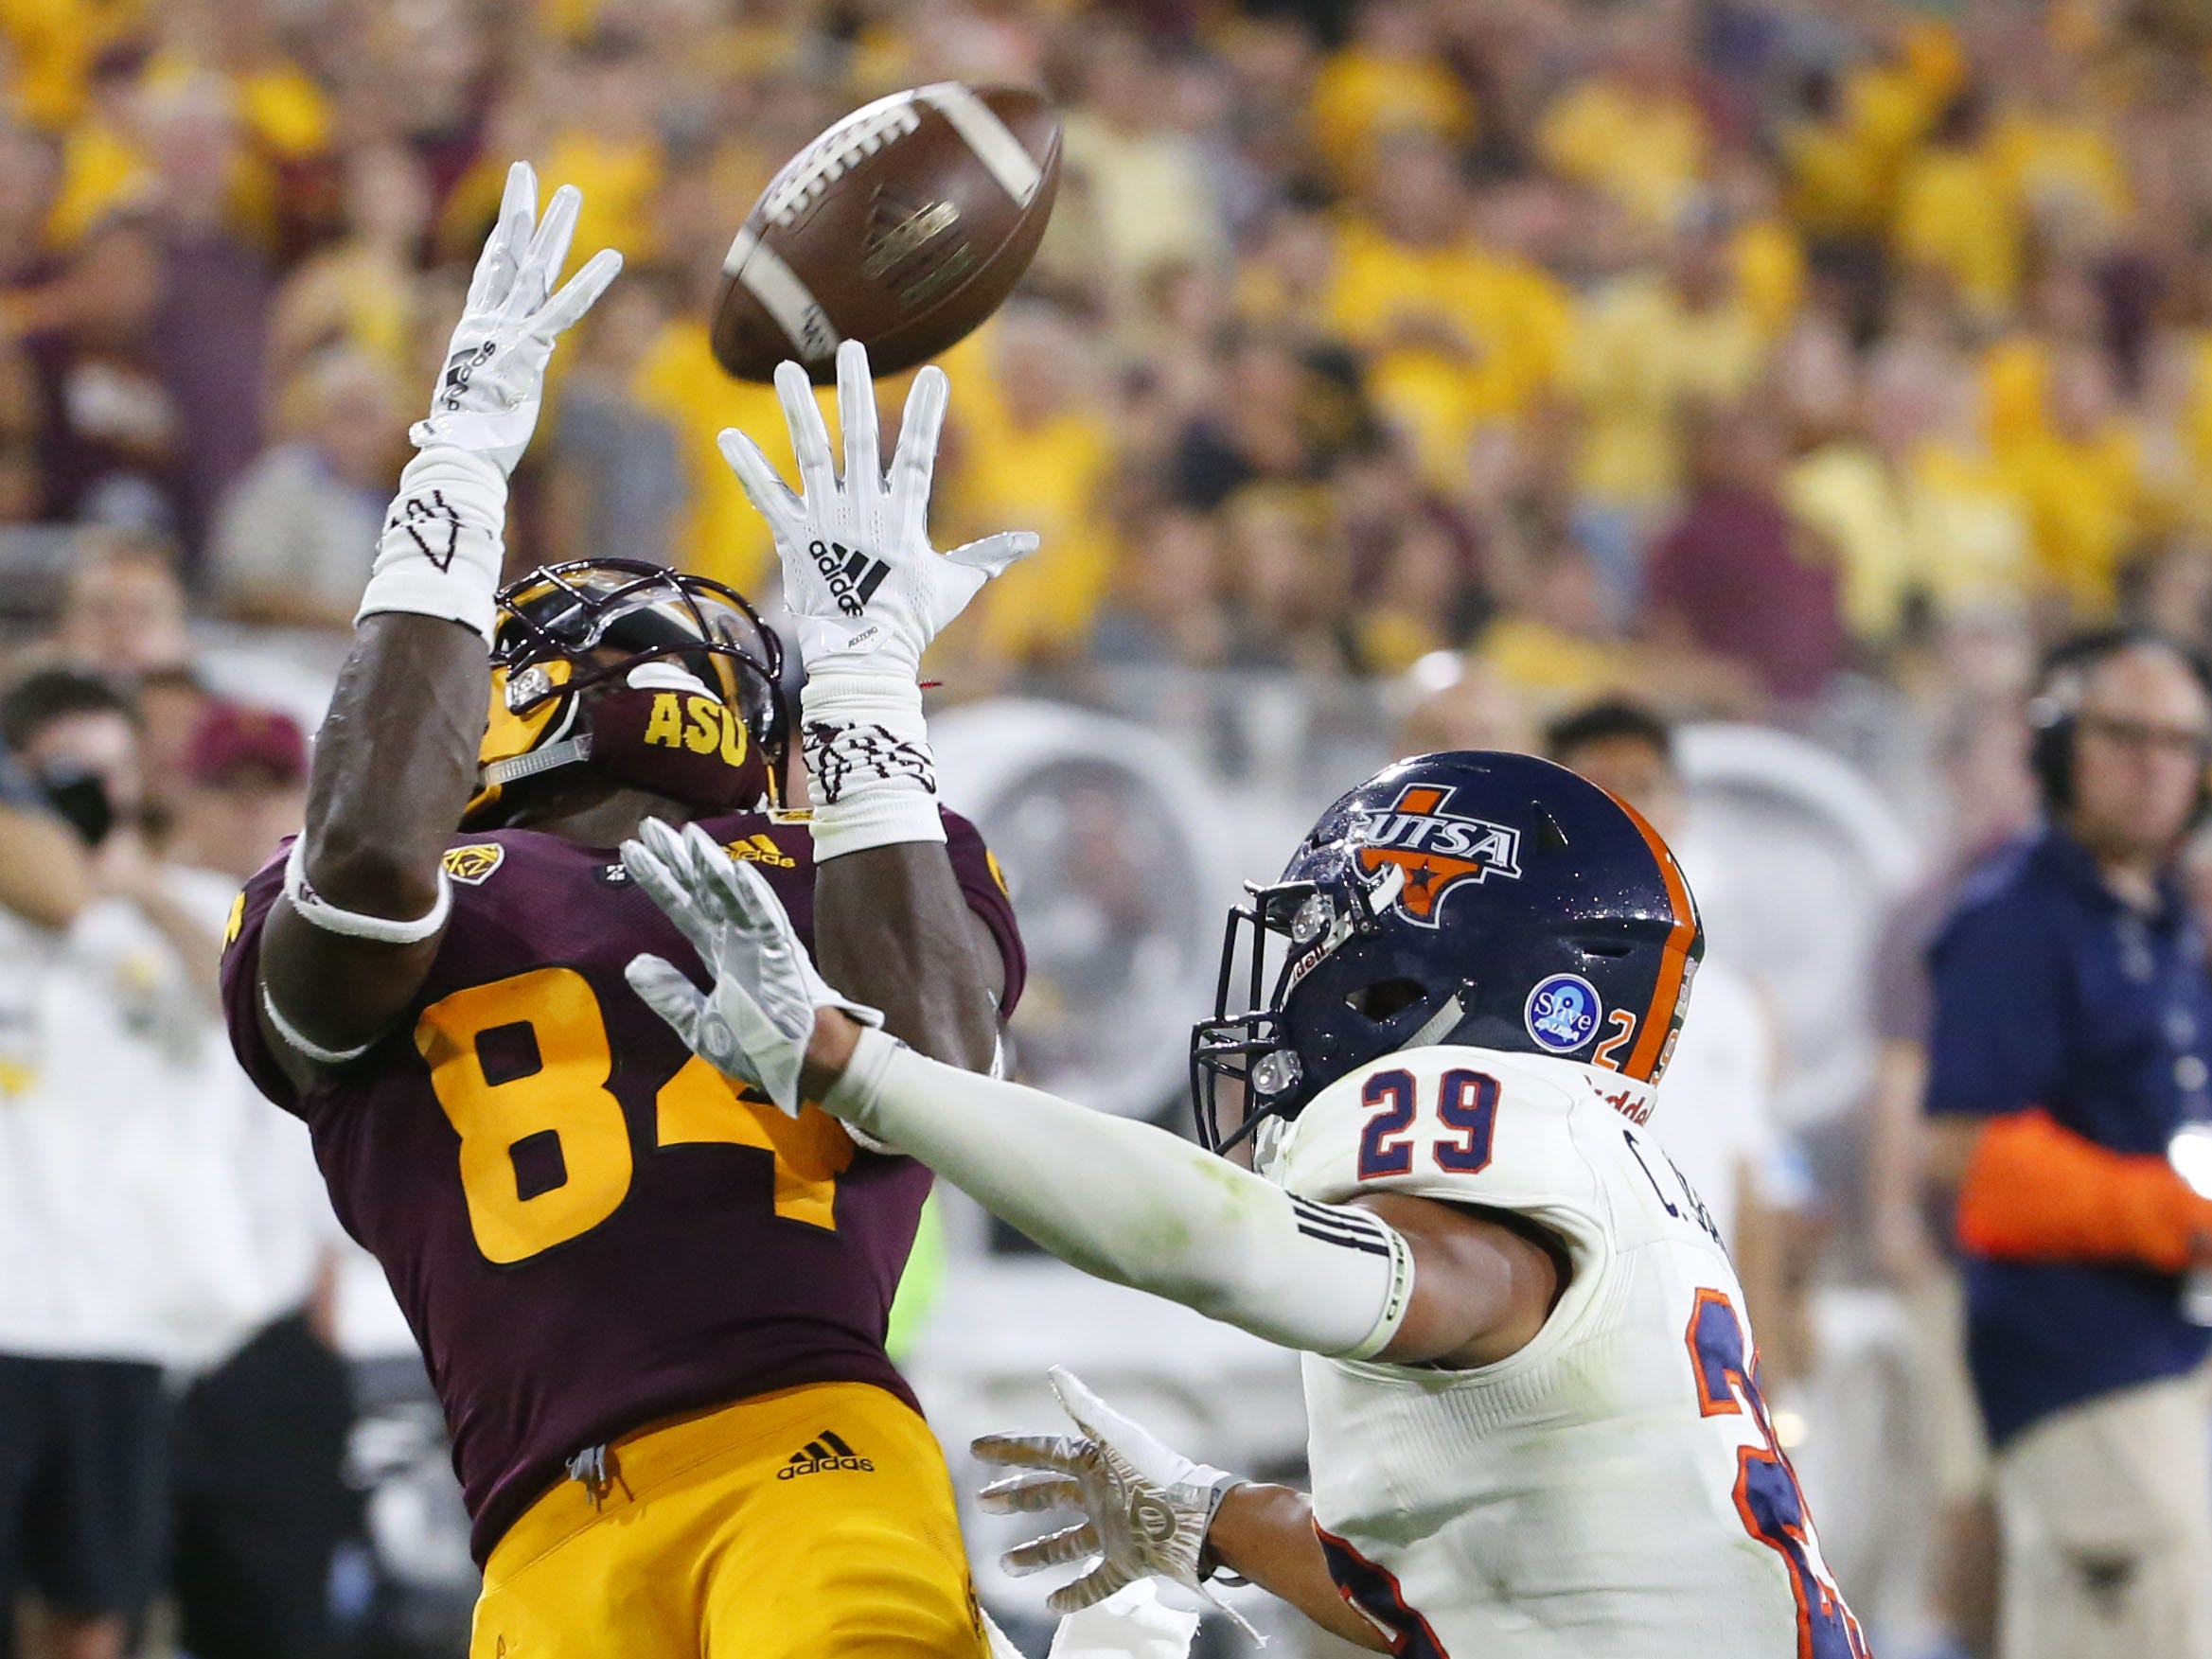 Arizona State Sun Devils wide receiver Frank Darby (84) completes a catch before being tackled by UTSA Roadrunners cornerback Clayton Johnson (29) during a football game at Sun Devil Stadium in Tempe on September 1, 2018.